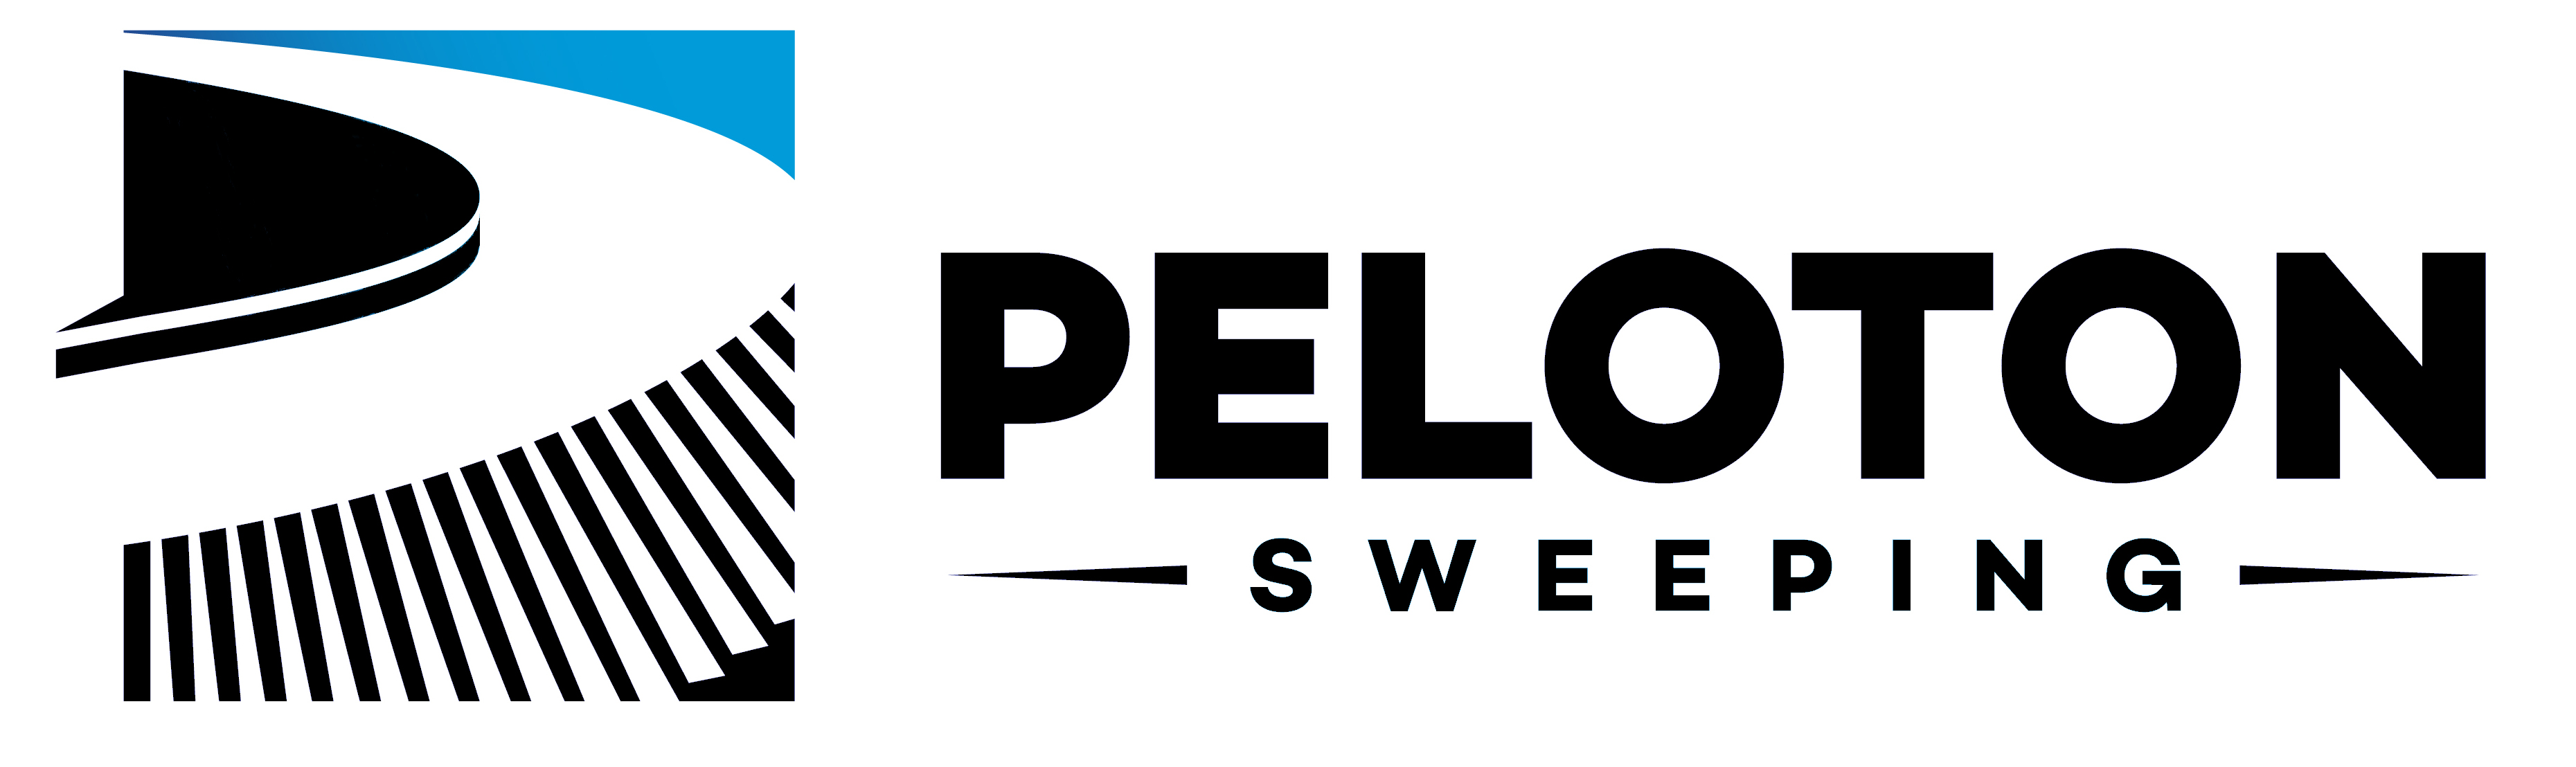 Peloton Sweeping